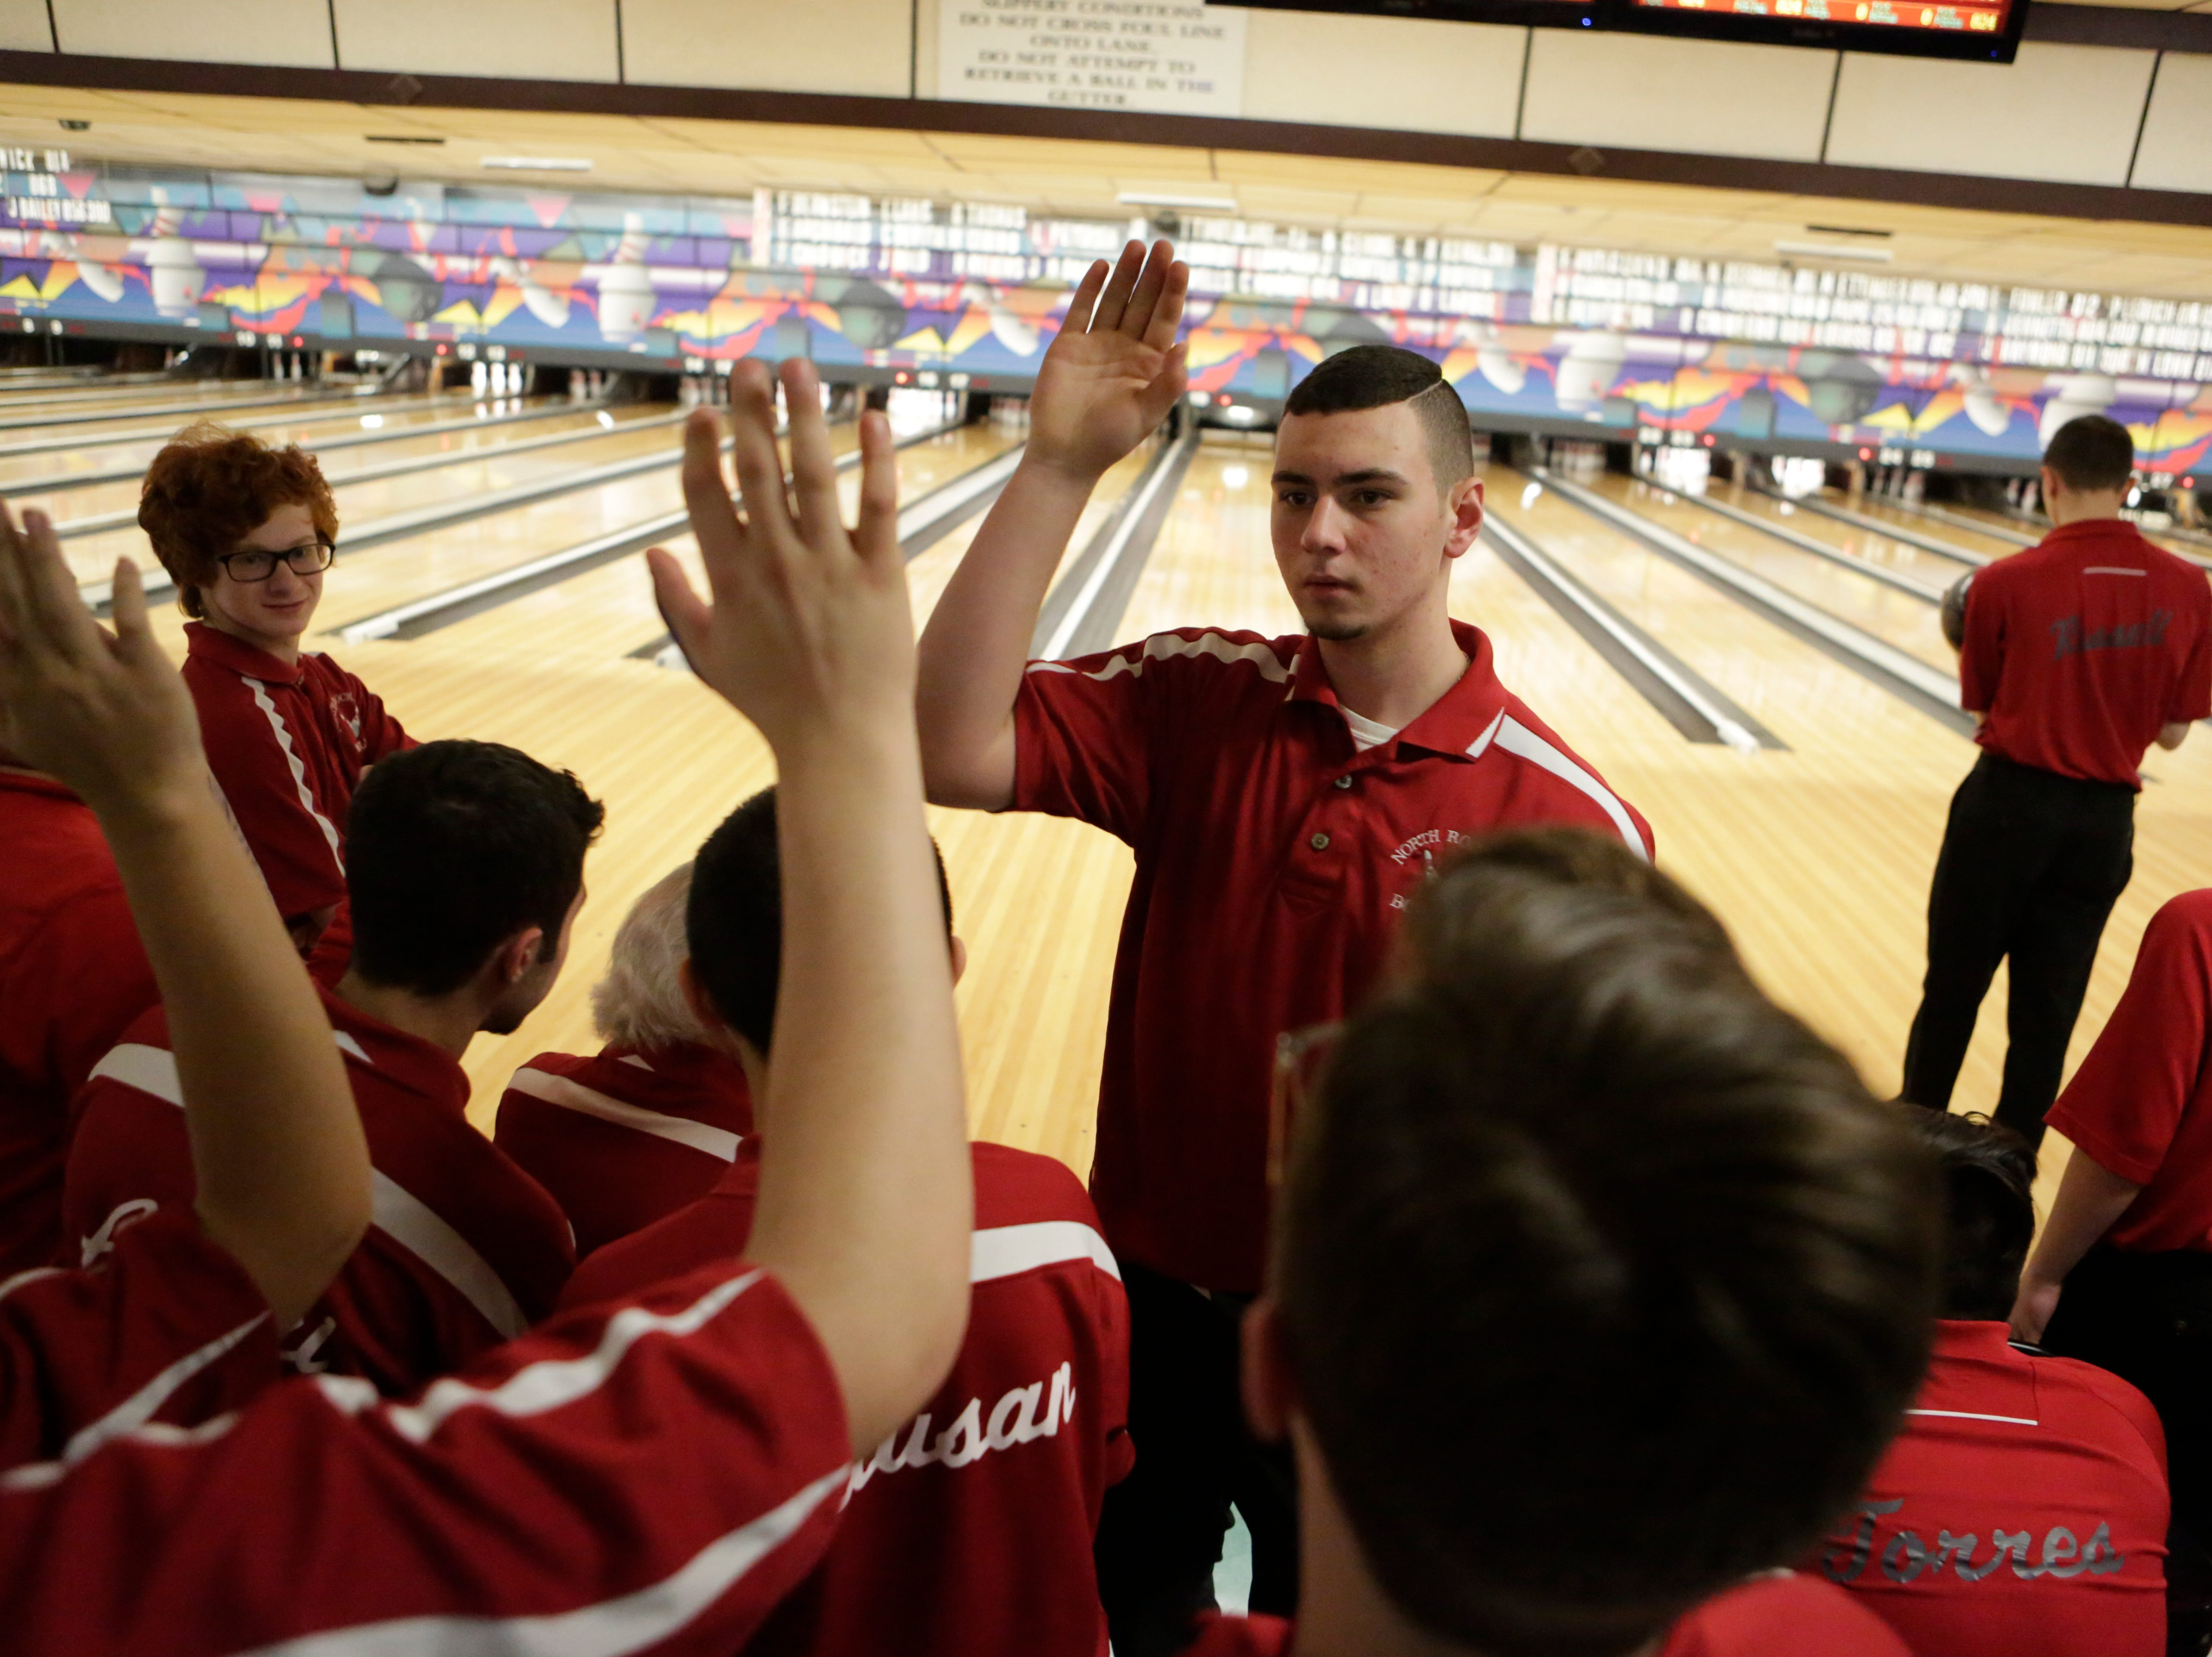 North Rockland's Nick Varano at the Section 1 Bowling tournament at the Fishkill Bowl in Fishkill on Feb. 13, 2018.